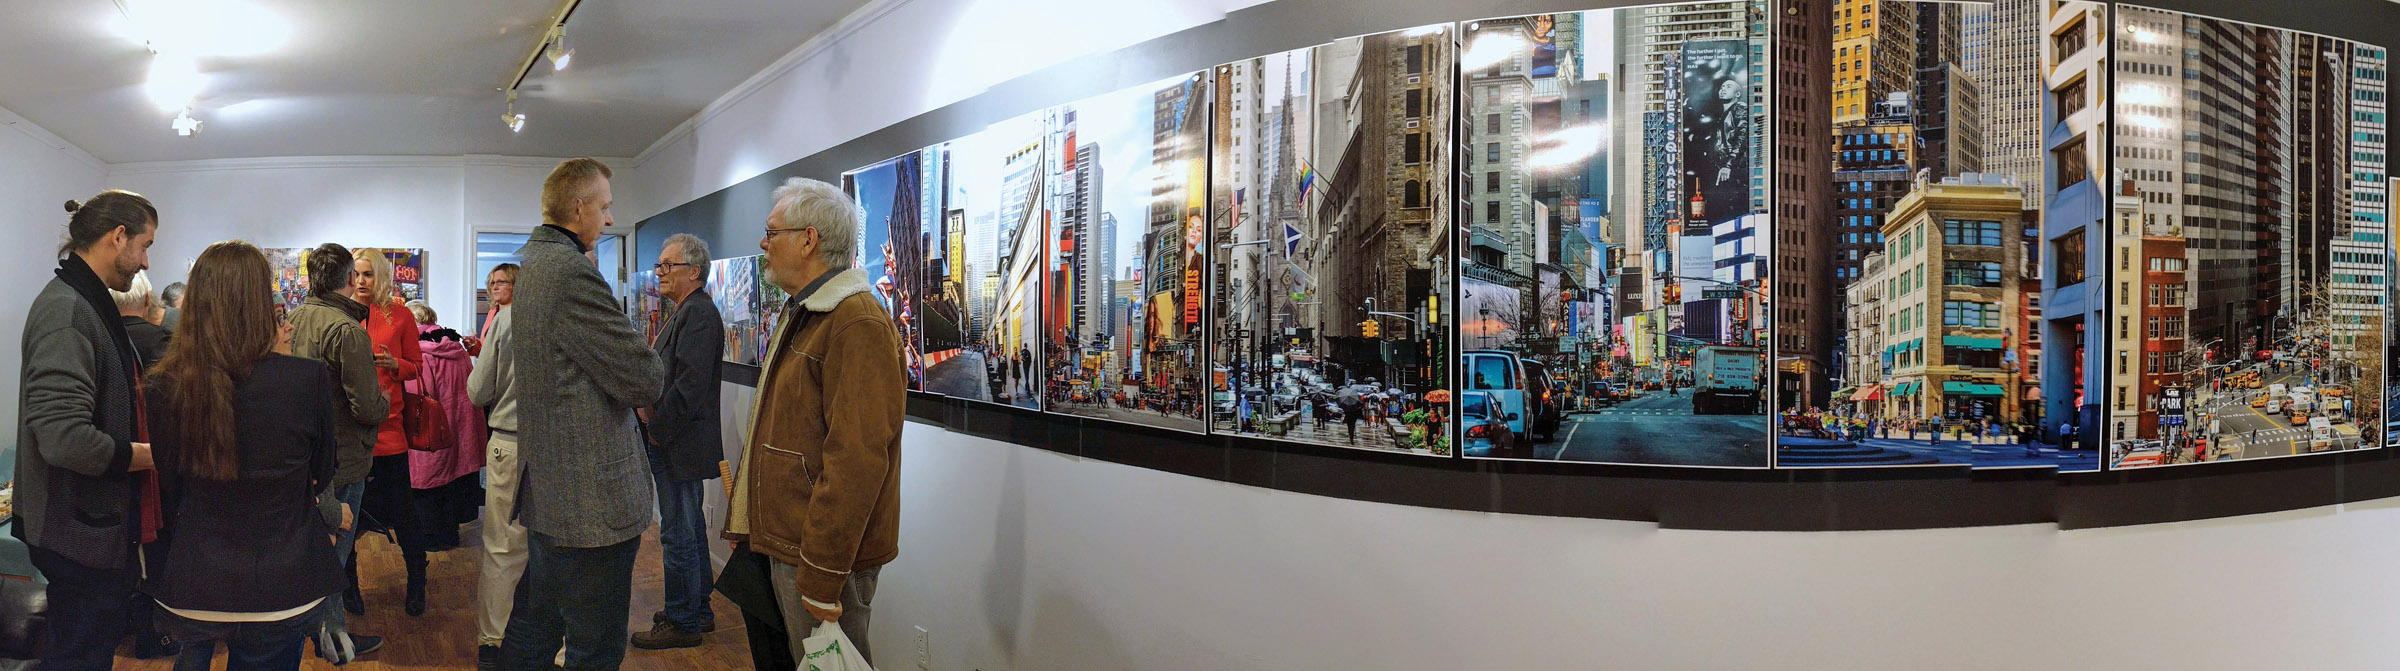 """Manhattan"" - Kurier Plus Gallery, Greenpoint Brooklyn, NY. Panorama photo by Jolanta Szczepkowska"